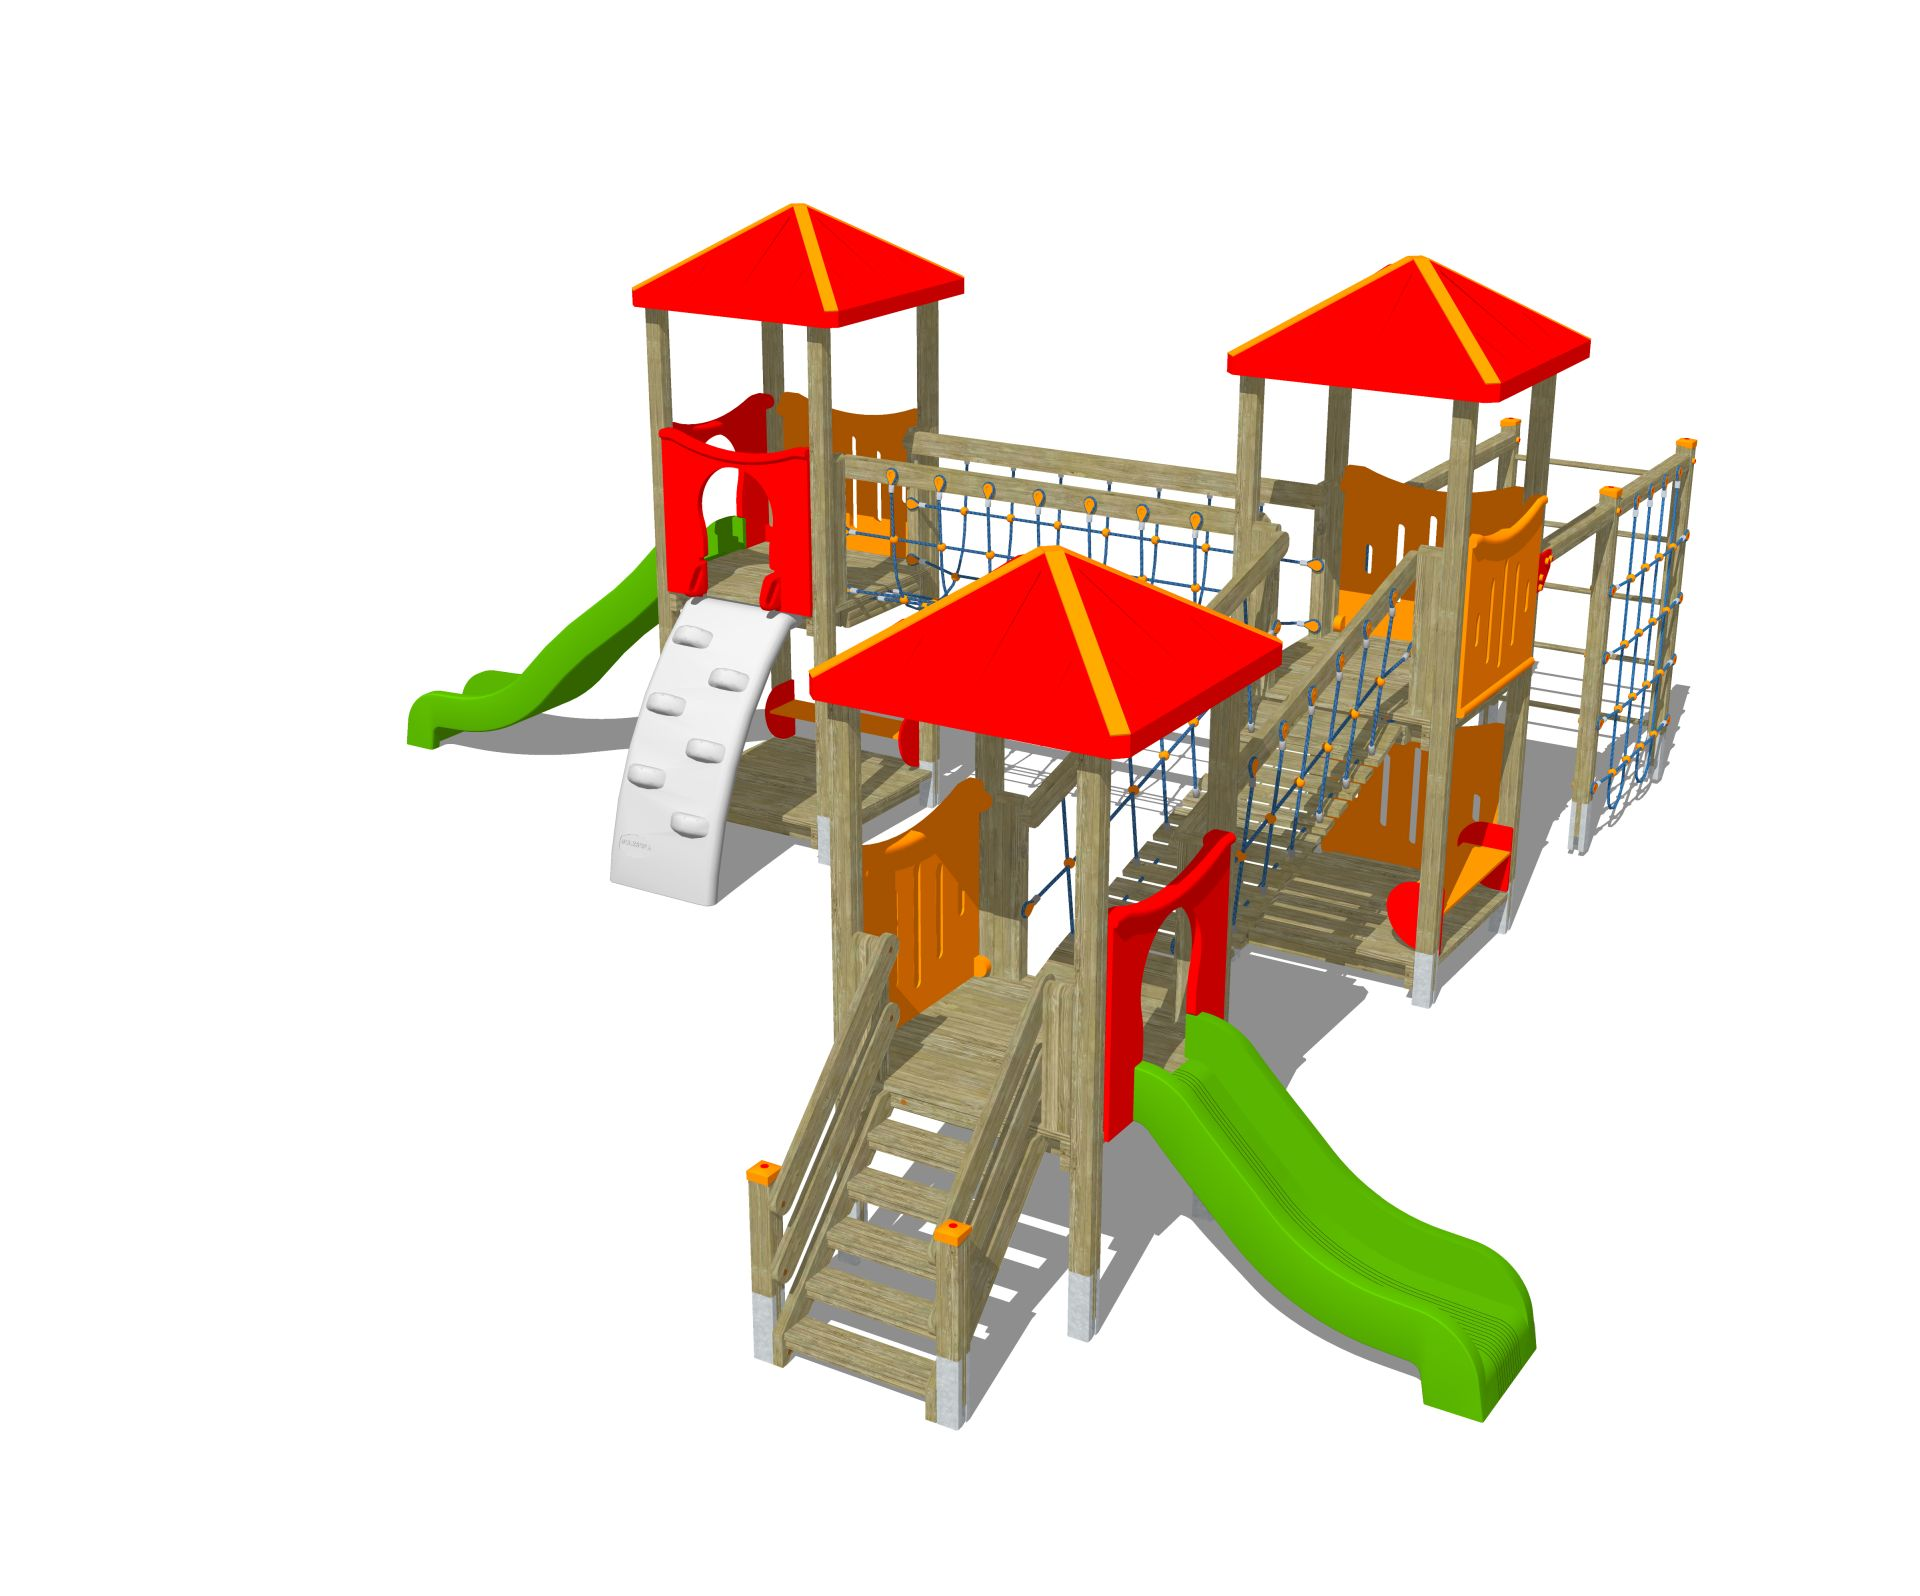 Holzhof MAX & SULTAN Max 3 towers, 1 polyethylene slide h 84 + 1 h 144, shroud + rope wall climber